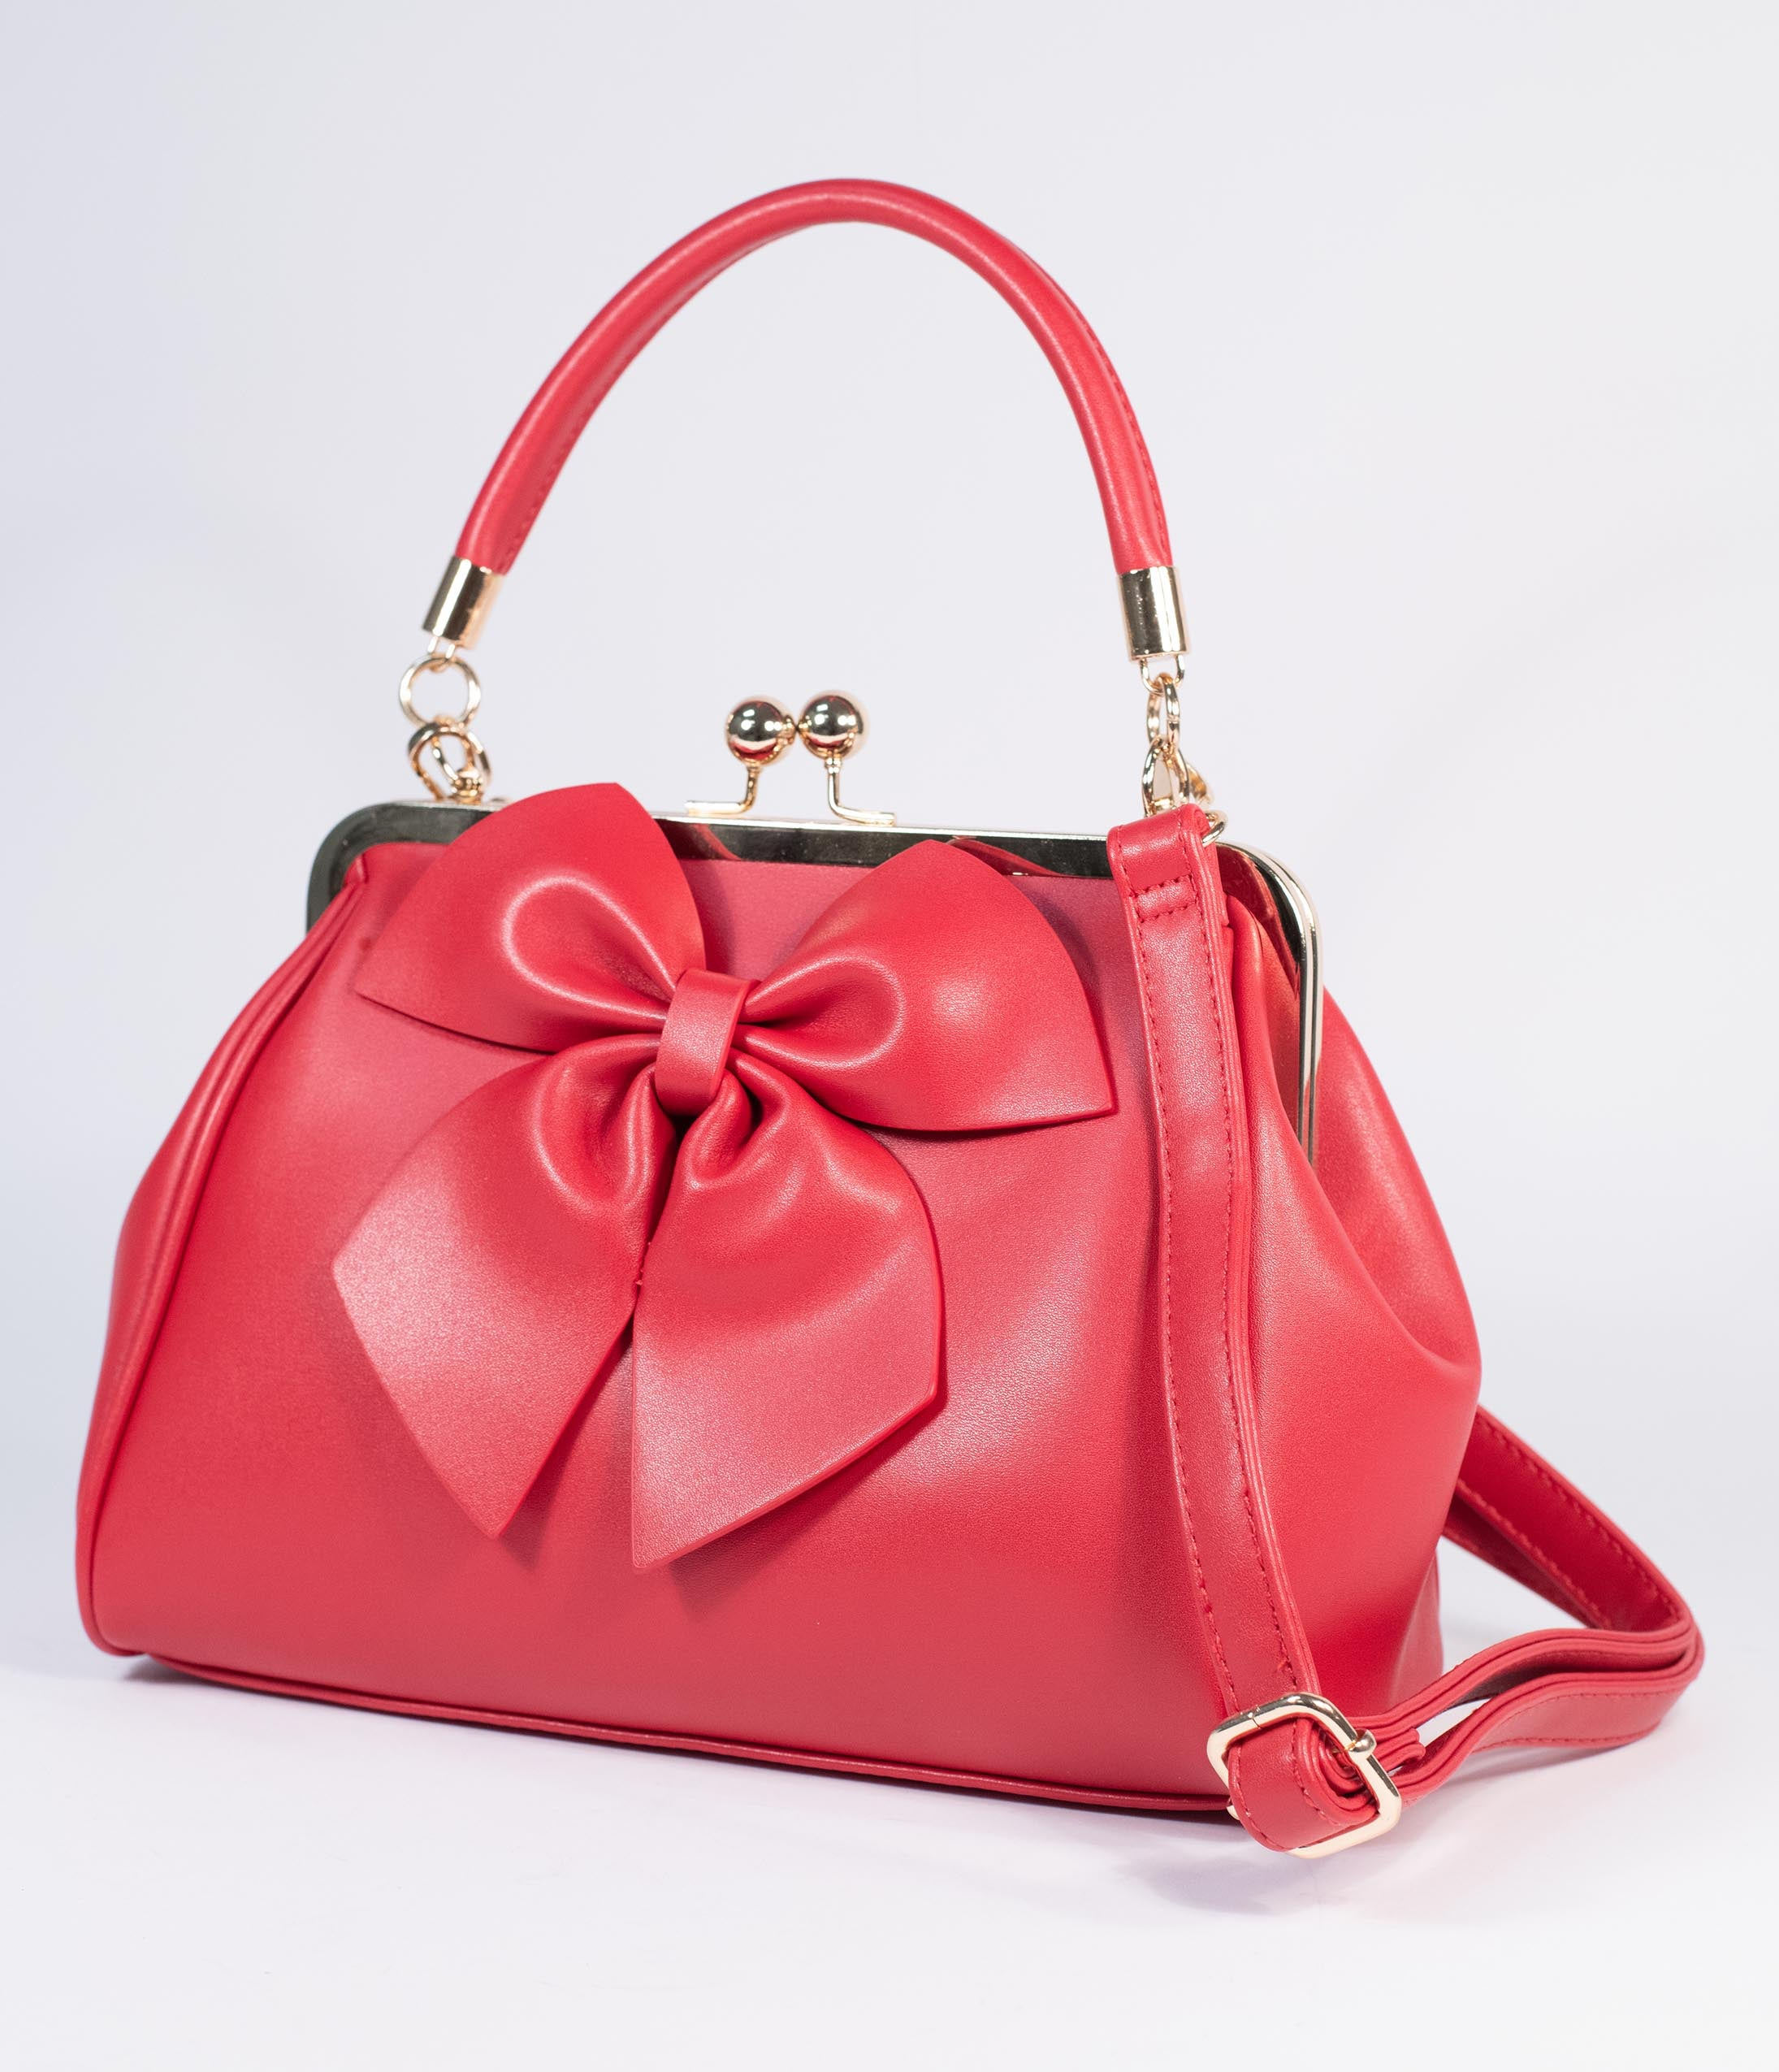 1950s Handbags, Purses, and Evening Bag Styles Red Leatherette Bow Lockwood Handbag $74.00 AT vintagedancer.com